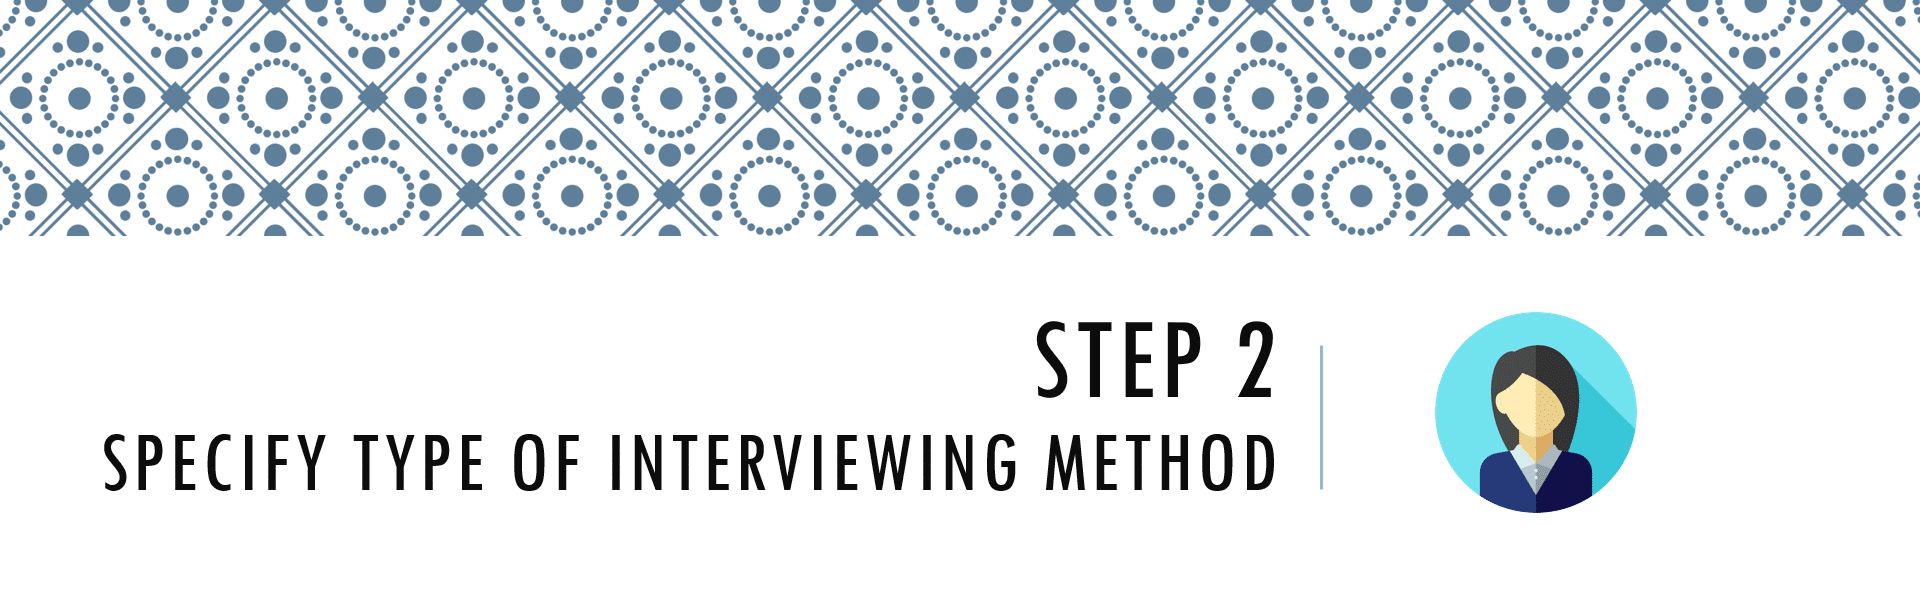 Questionnaire Design Process Step 2 - Specify Type of Interviewing Method